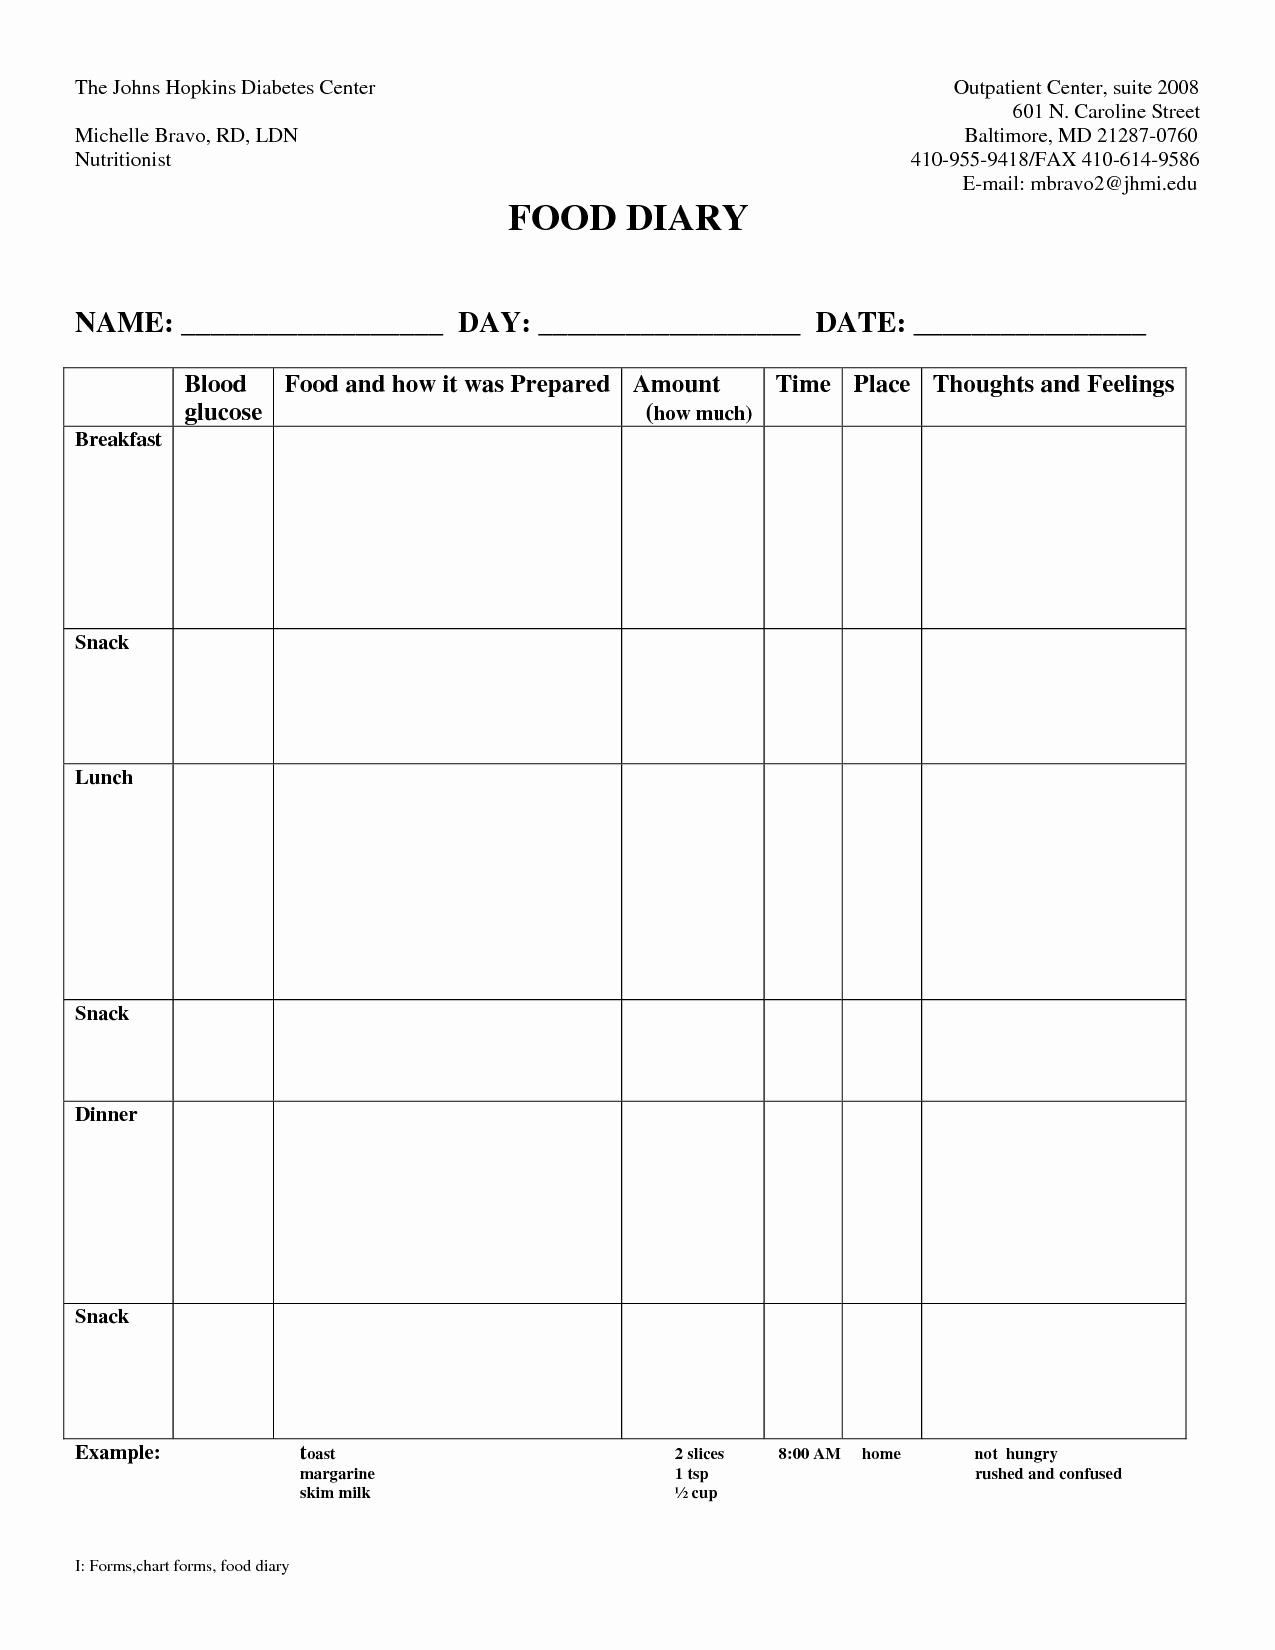 Diabetes Food Diary Printable Lovely Best S Of Weekly Food Diary form Weekly Food Diary